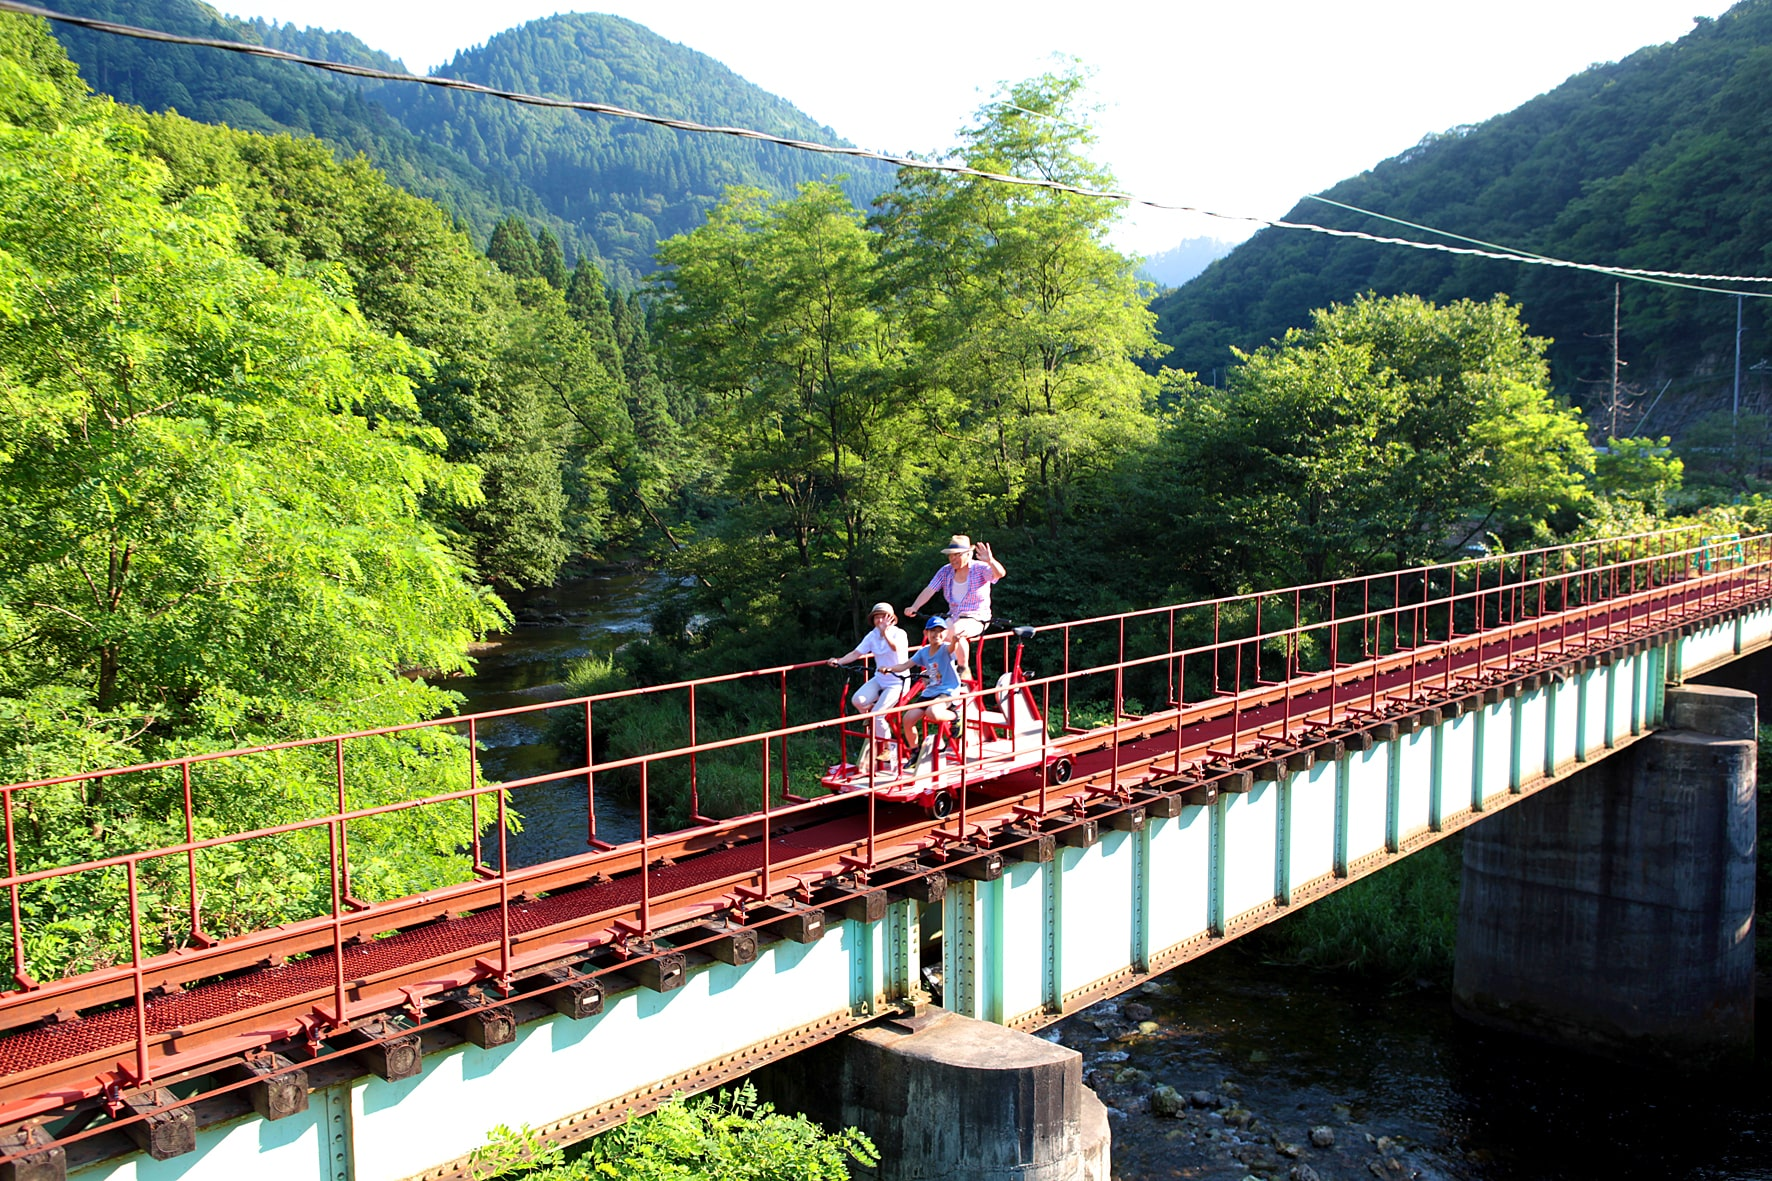 Rail park ride with Summery scenery